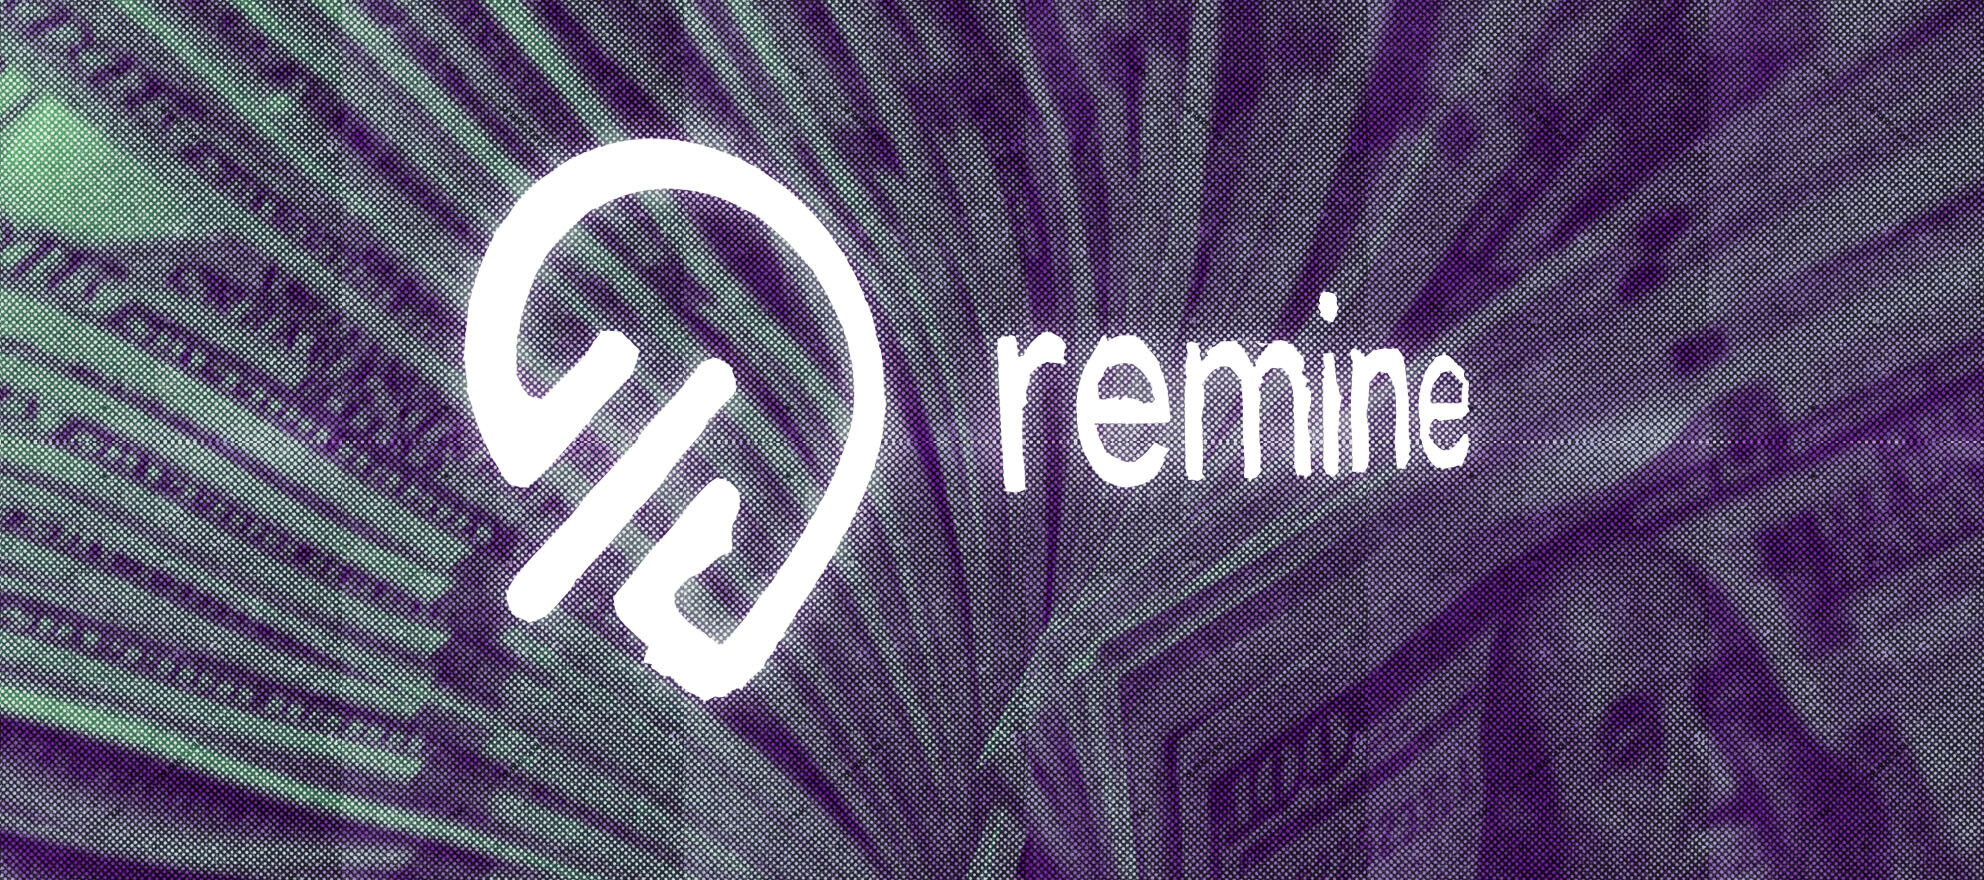 4 multiple listing services unite to acquire Remine, replace CEO